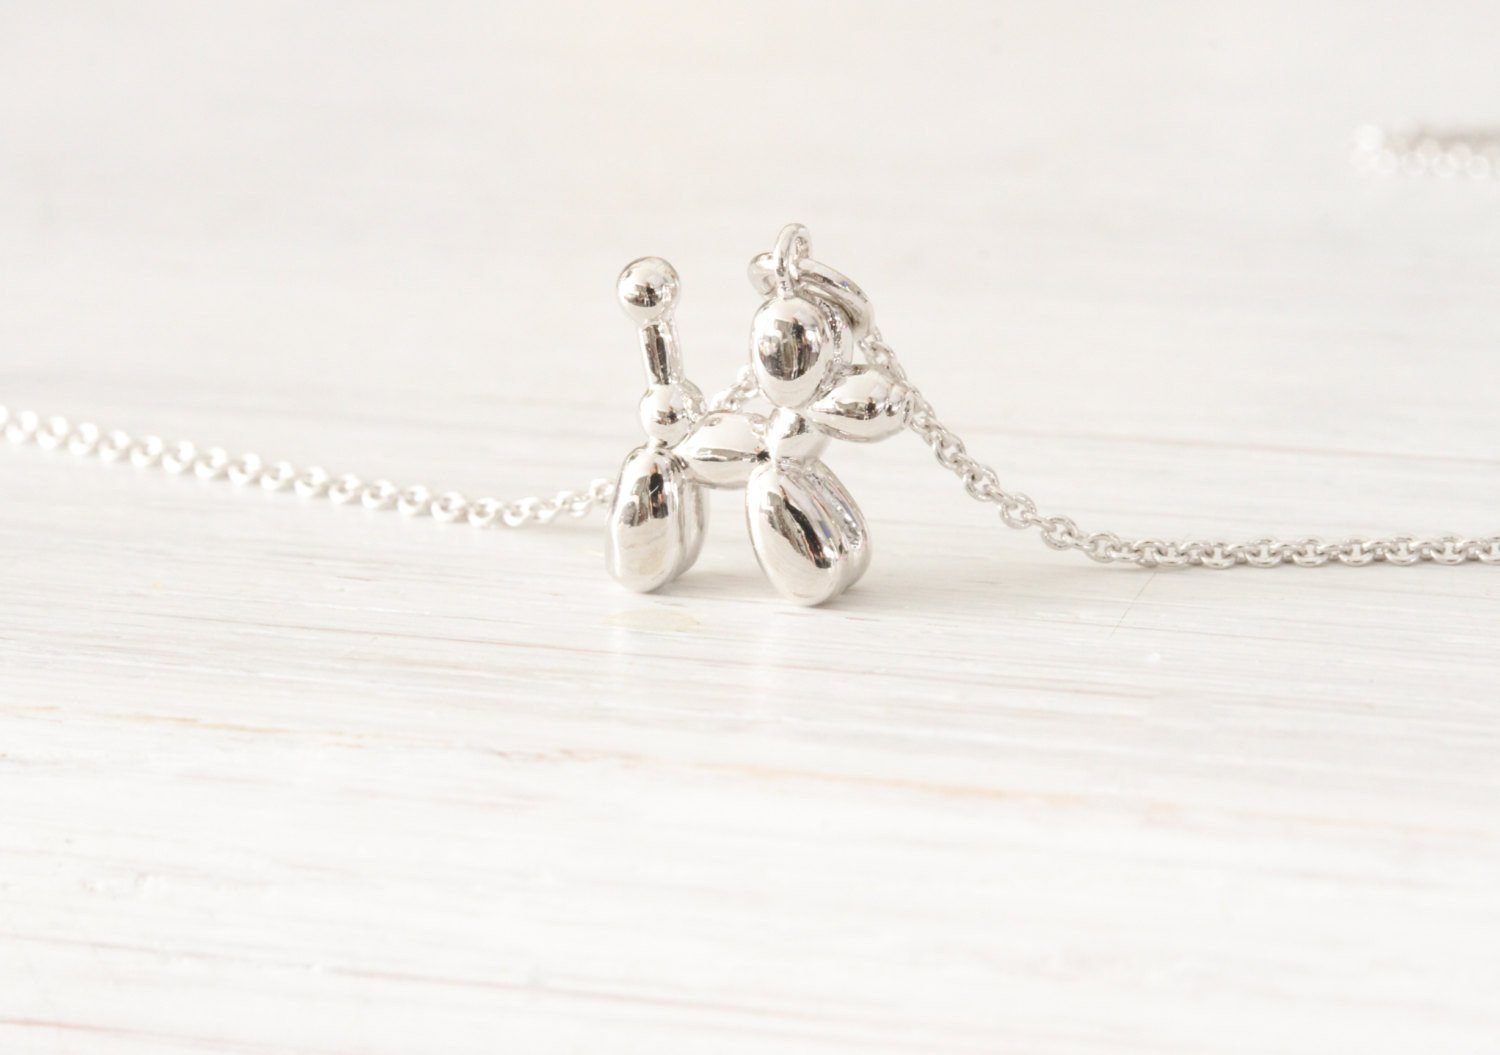 Poodle Balloon Dog Silver Necklace Jewelry, Tiny Dainty Minima Beautiz